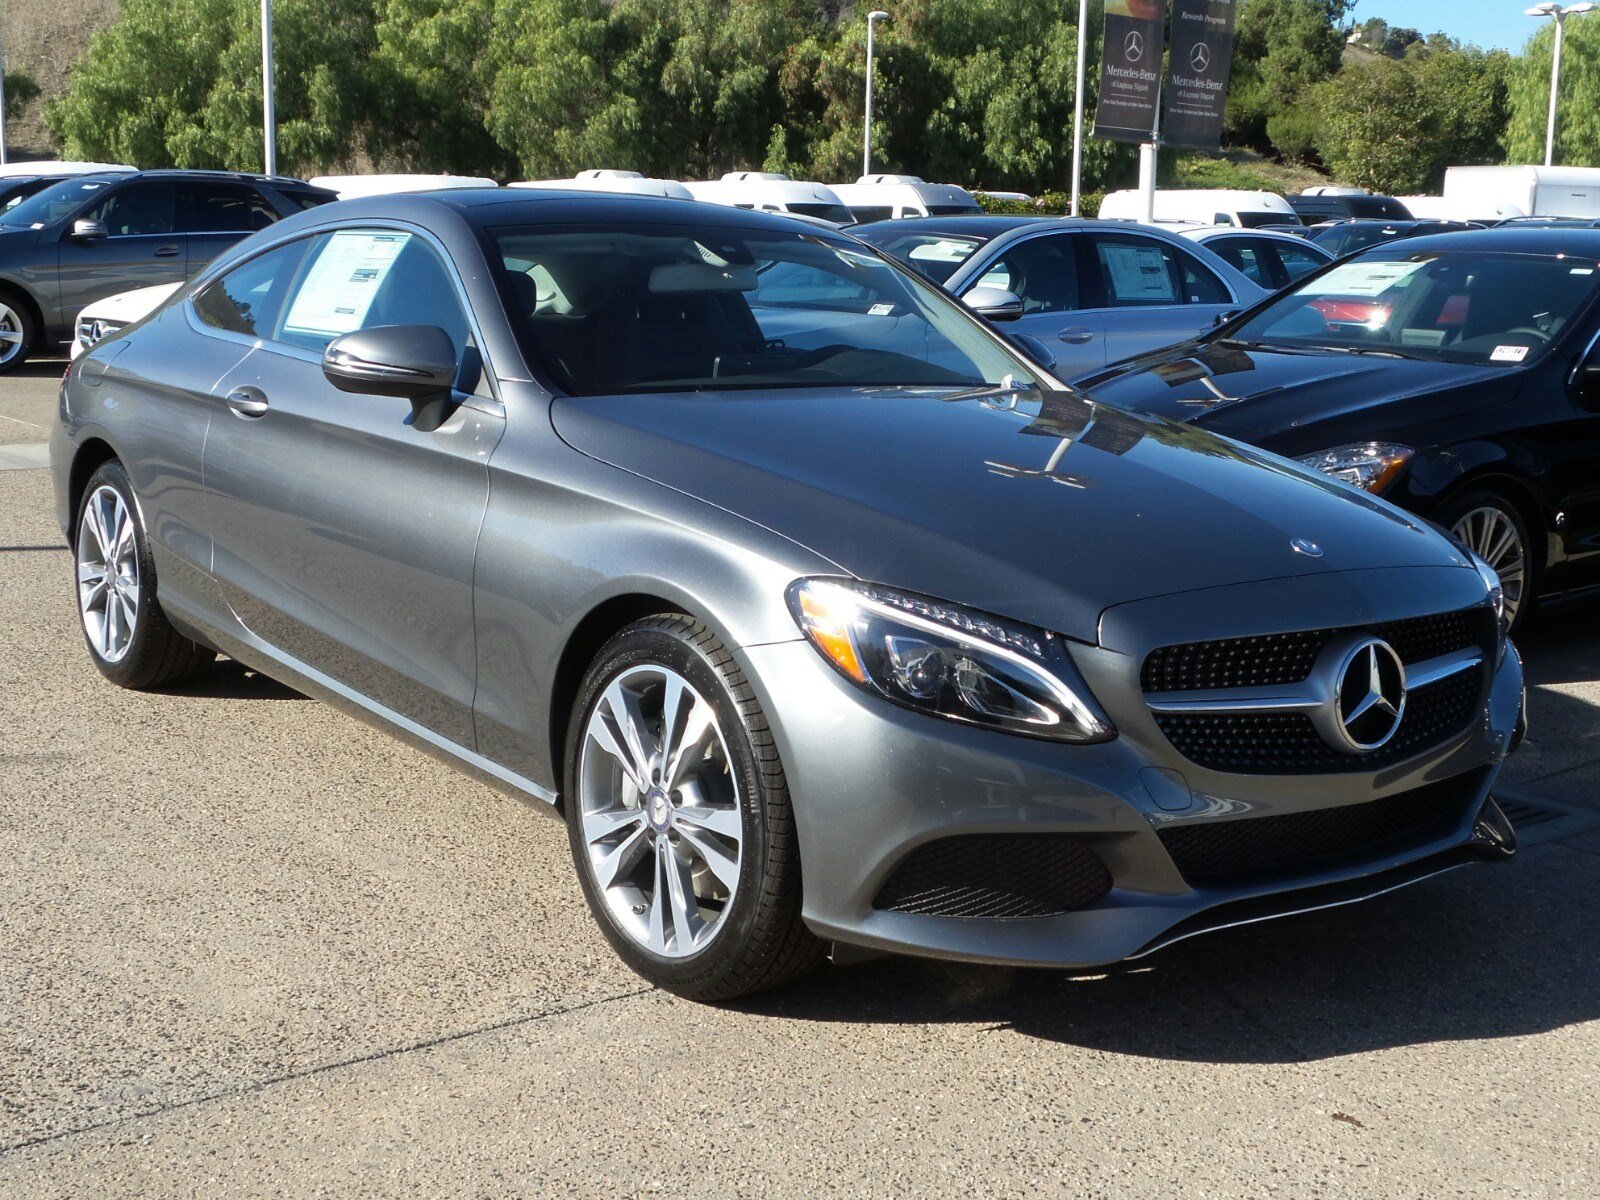 c300 coupe in laguna niguel a34426 mercedes benz of laguna niguel. Cars Review. Best American Auto & Cars Review